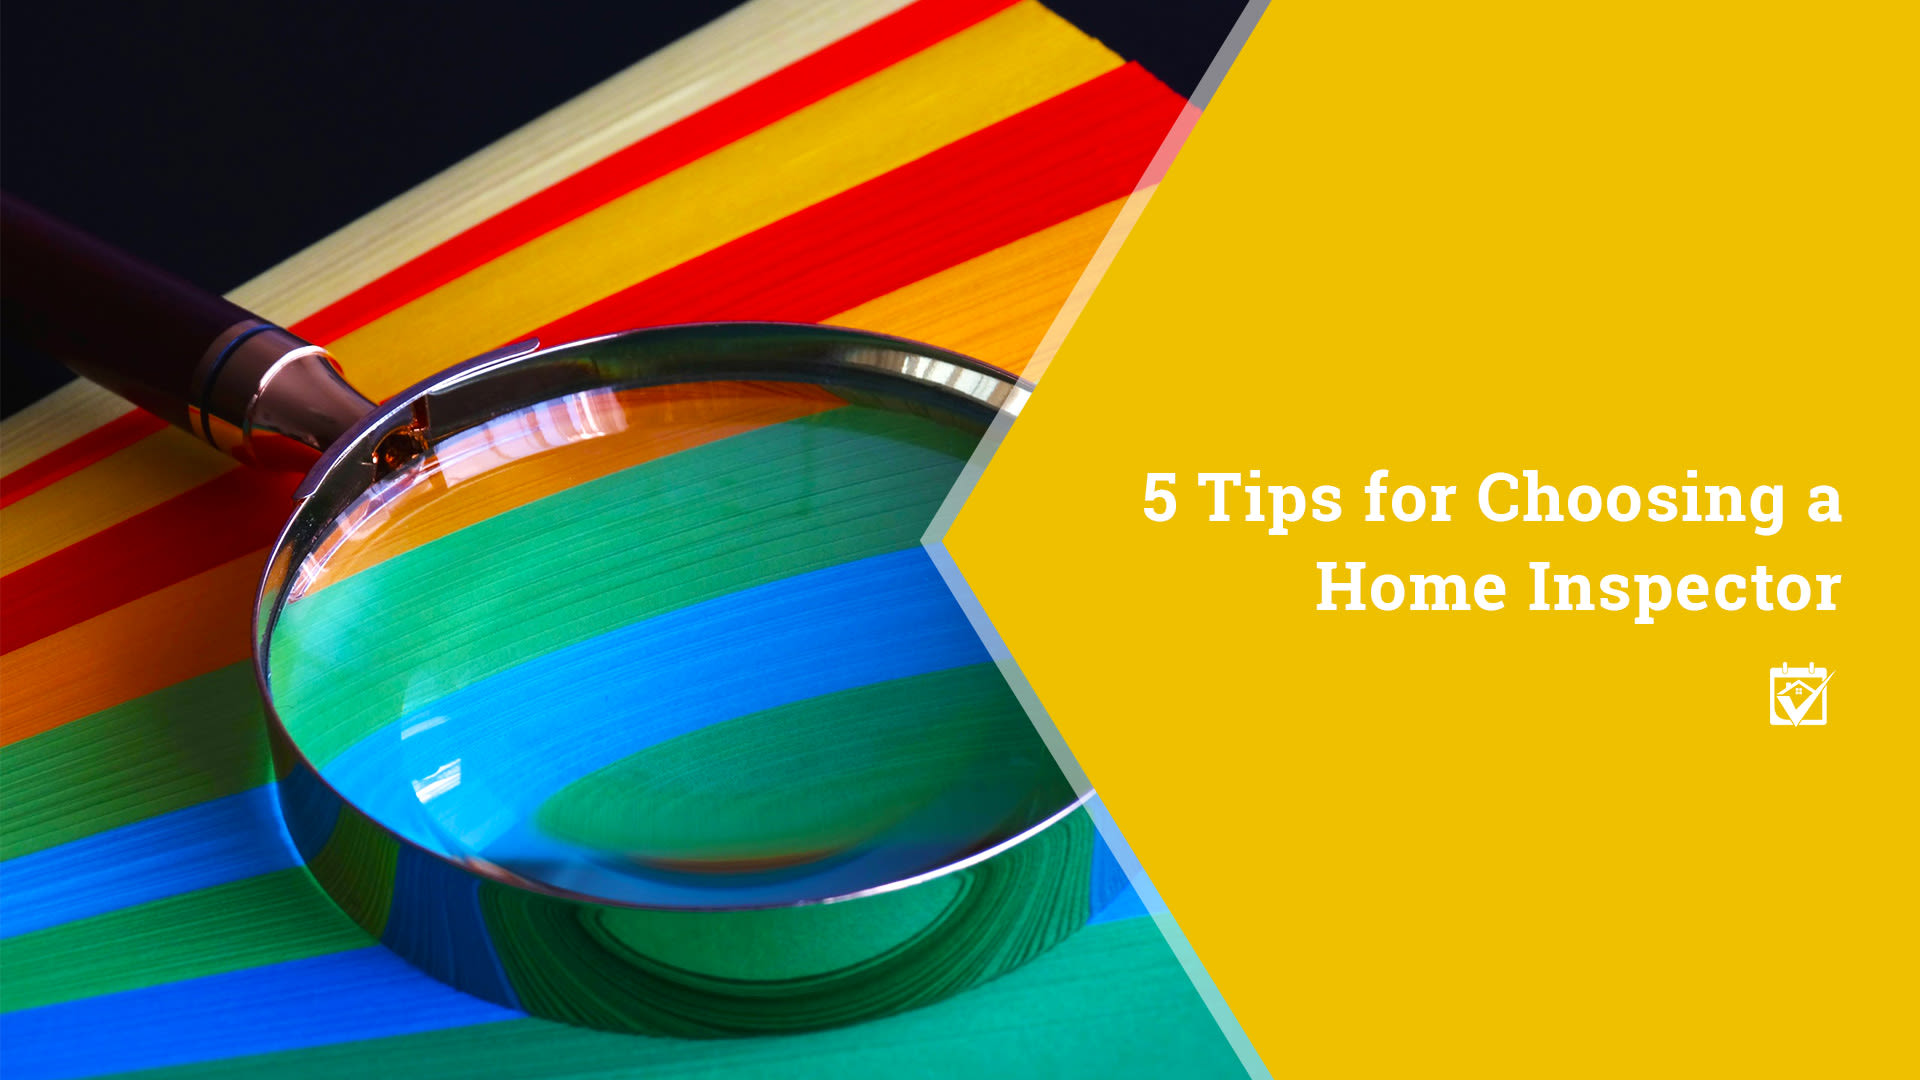 TIps for Choosing a Home Inspector